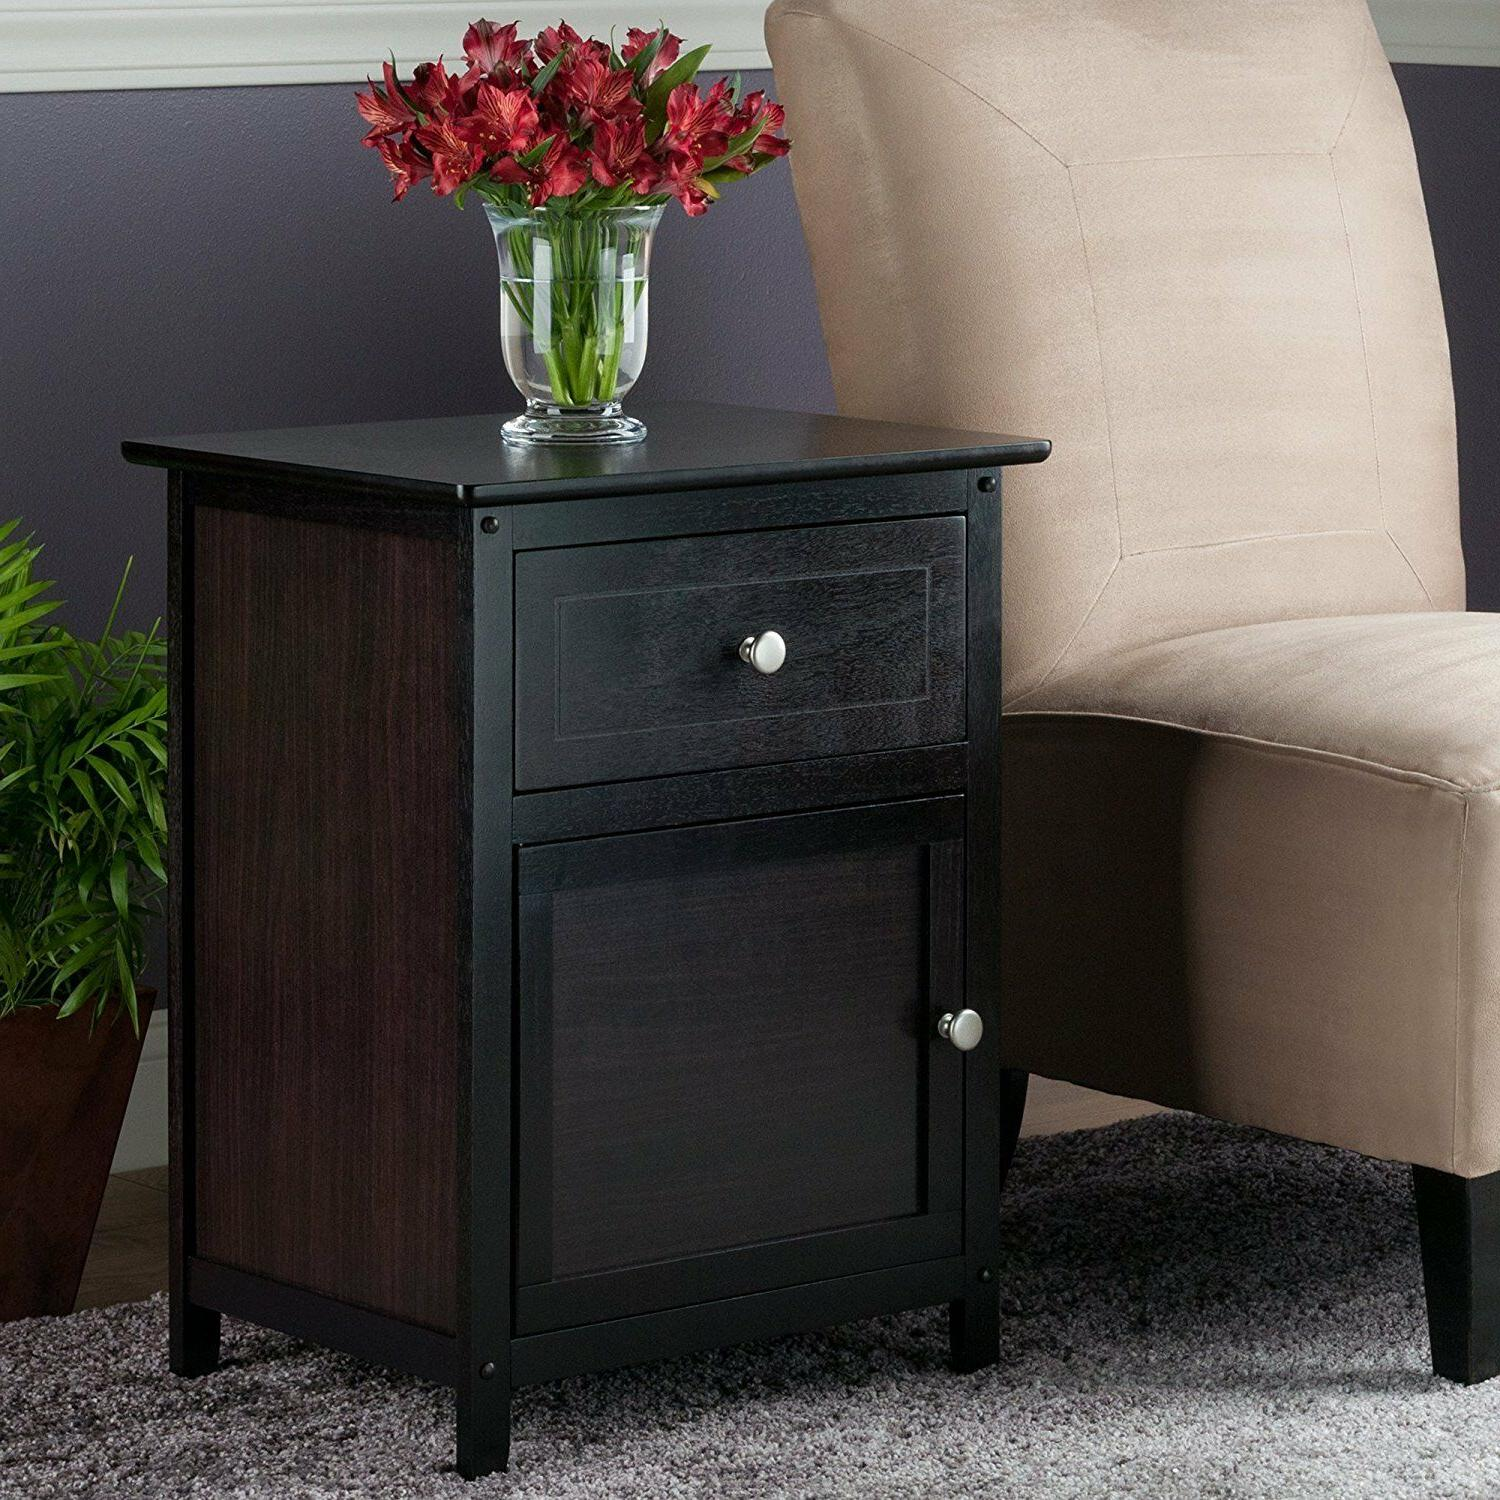 Wooden Stand Table Bed Side Living Home